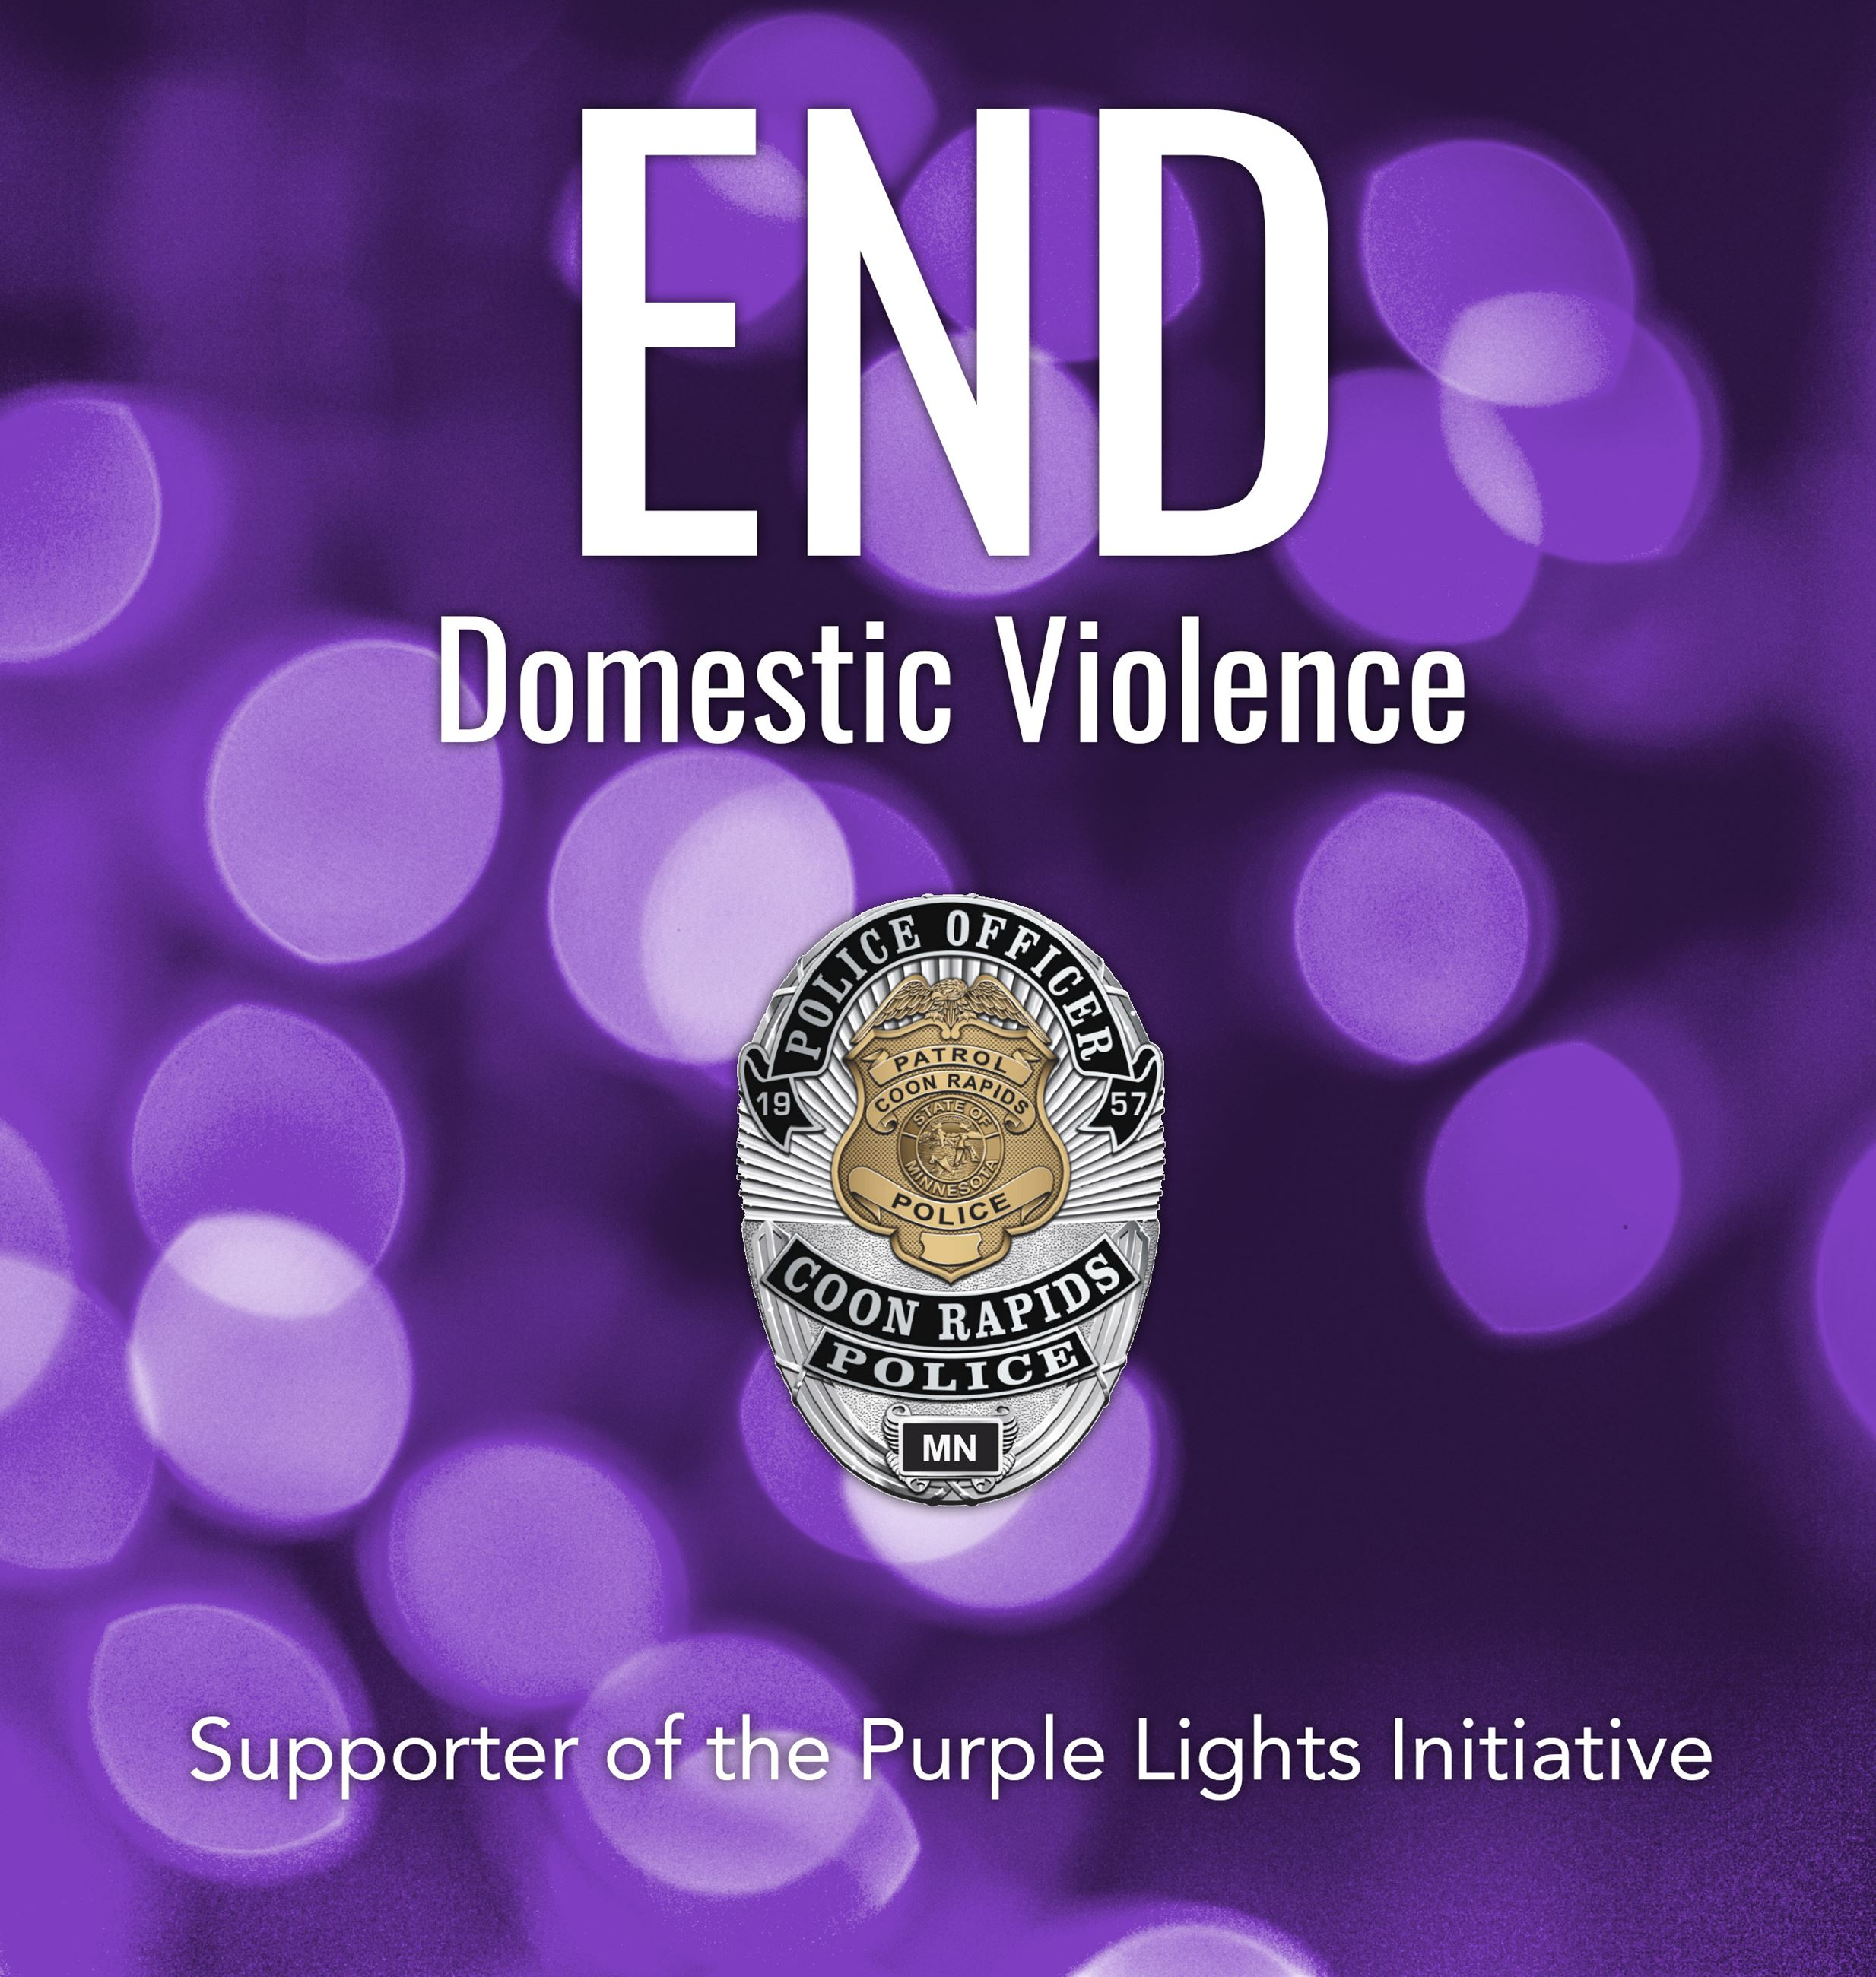 End Domestic Violence with purple background and a Coon Rapids Police badge